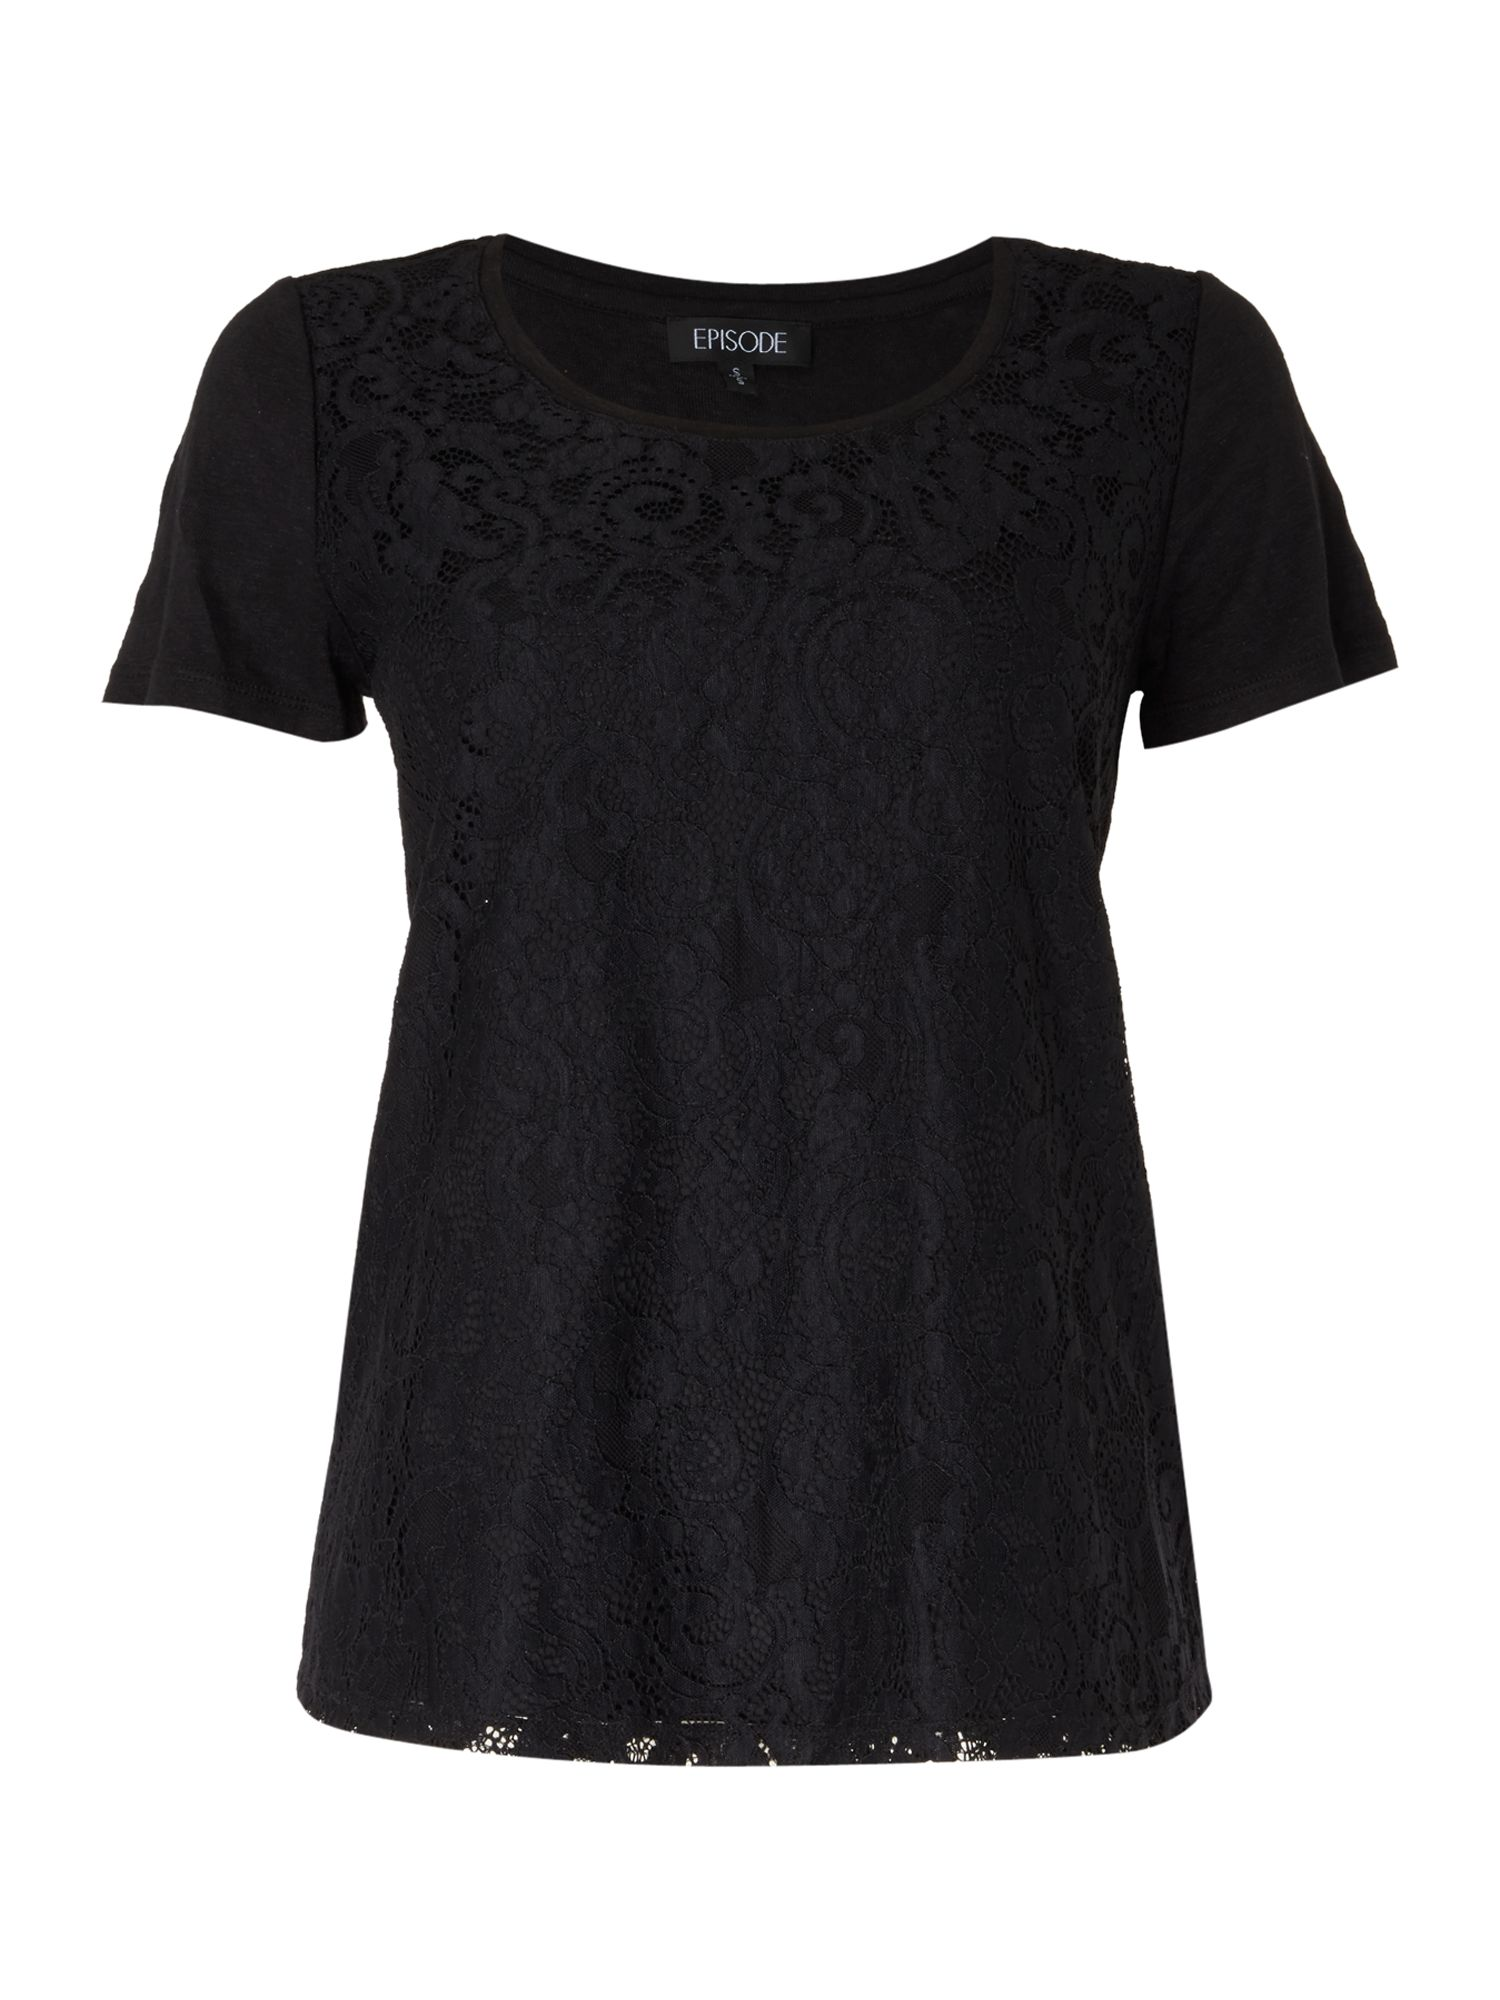 Episode Episode Lace front tee, Black